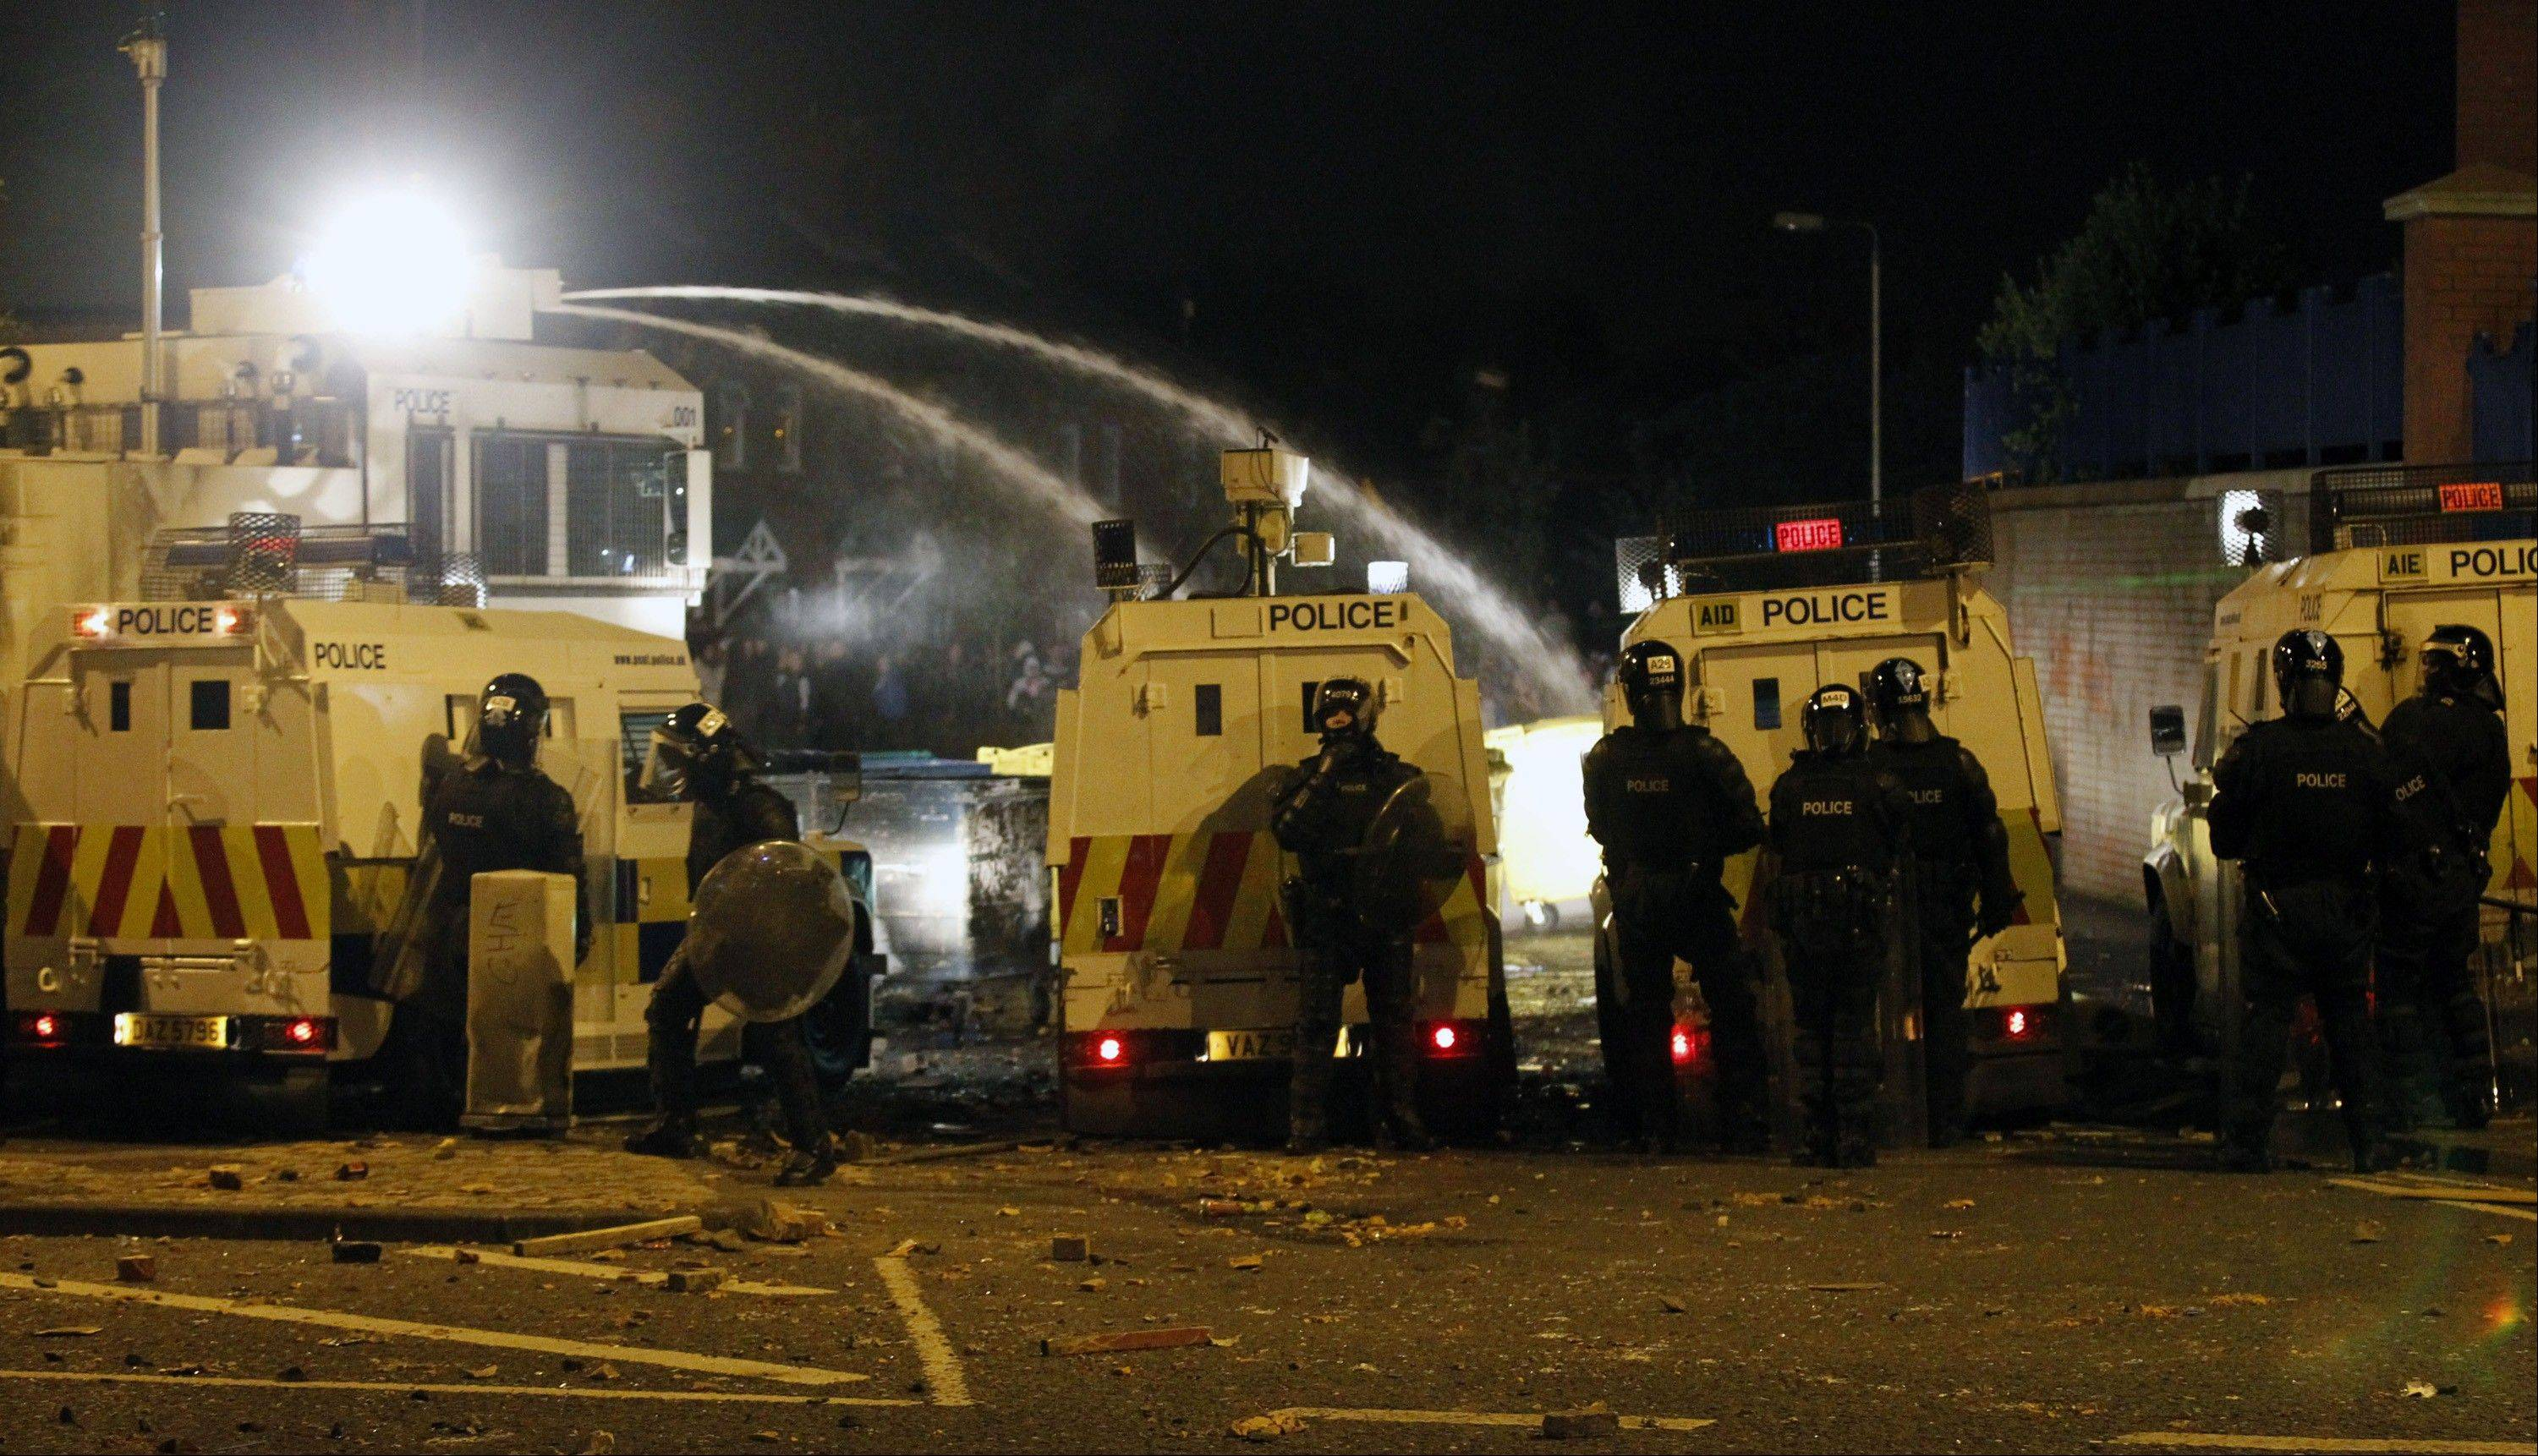 Police use a water cannon on loyalist rioters in North Belfast, Northern Ireland, Sunday, Sept. 2, 2012. A number of police were injured during a night of clashes. The violence came after unrest at marches in the area the previous weekend.